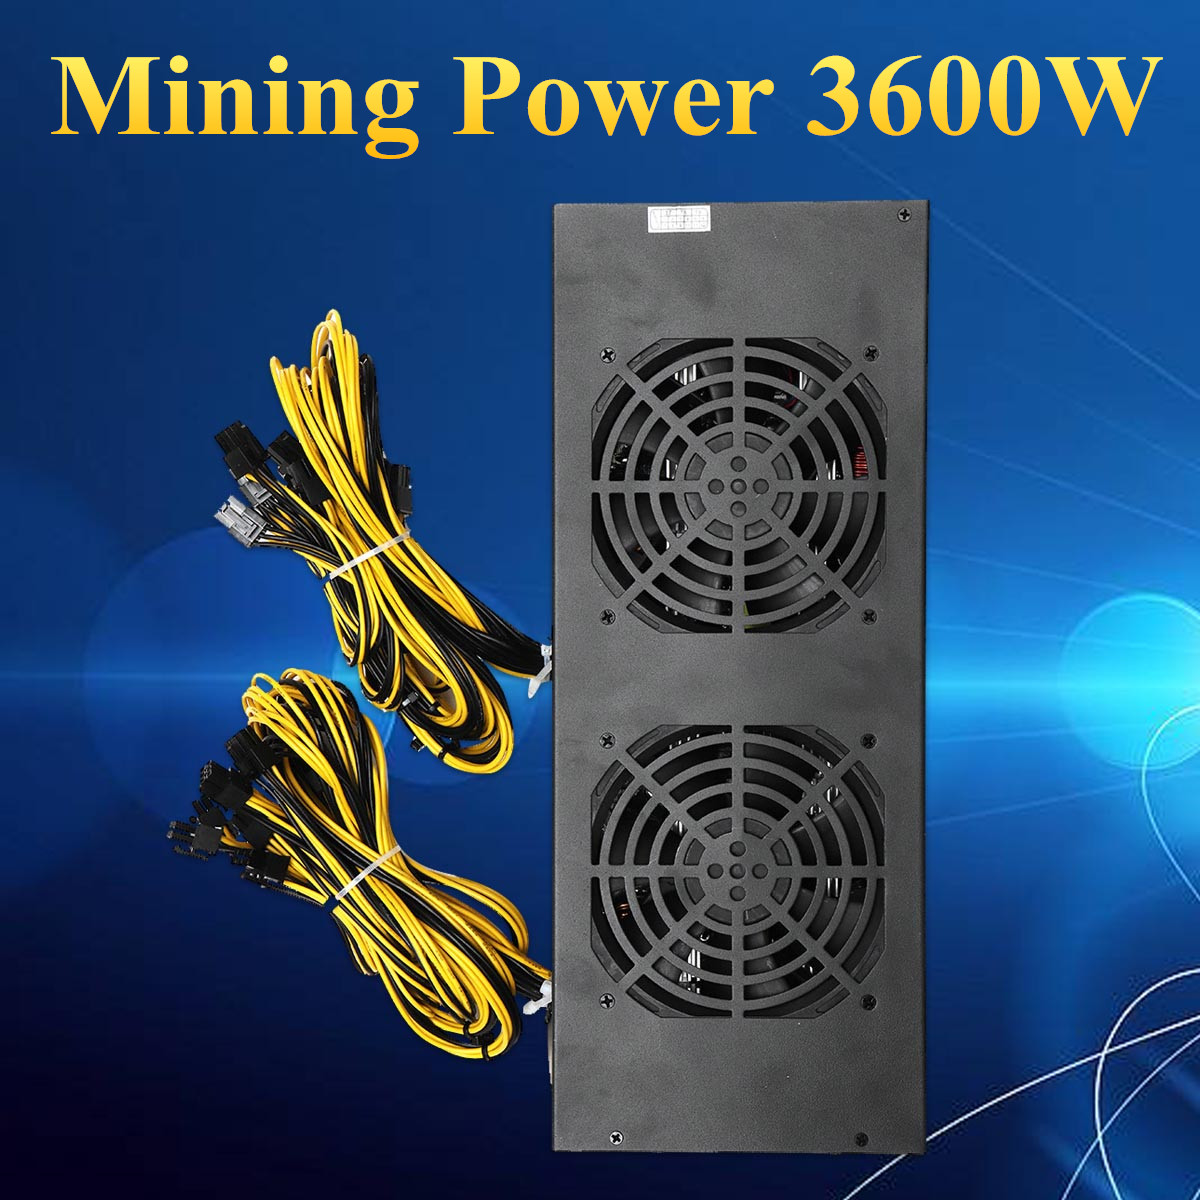 Leory 3600w Miner Mining Power Supply Mining Rig Machine With Four Fans For A6 A7 S5 S7 B3 E9 L3+ R4 Miner Available In Various Designs And Specifications For Your Selection